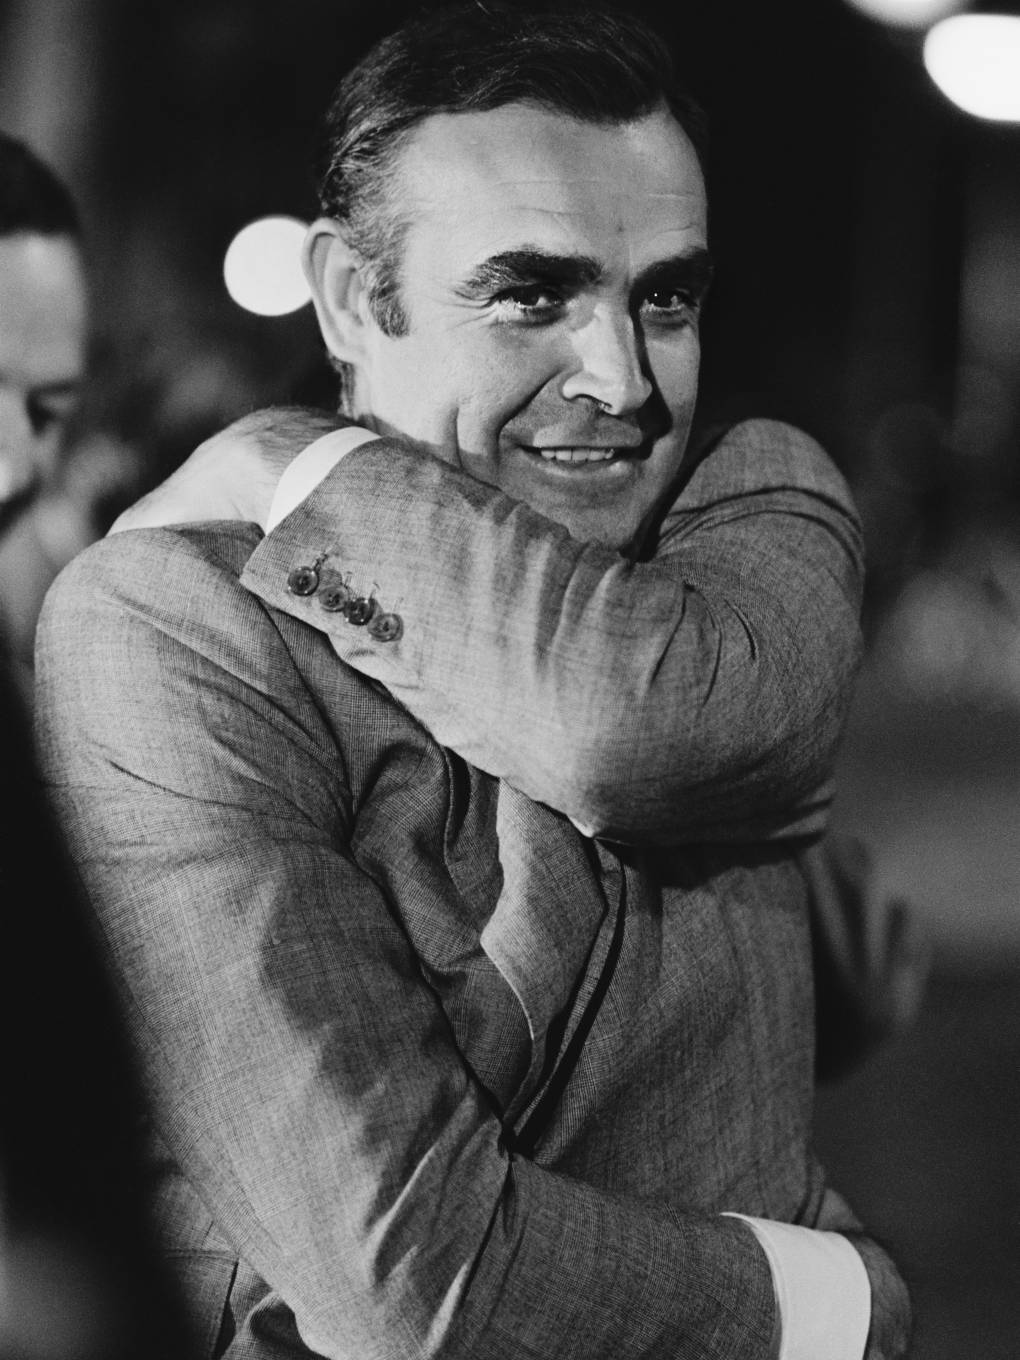 Sean Connery, pictured in Amsterdam during the 1971 filming of 'Diamonds Are Forever,' played James Bond in seven movies.